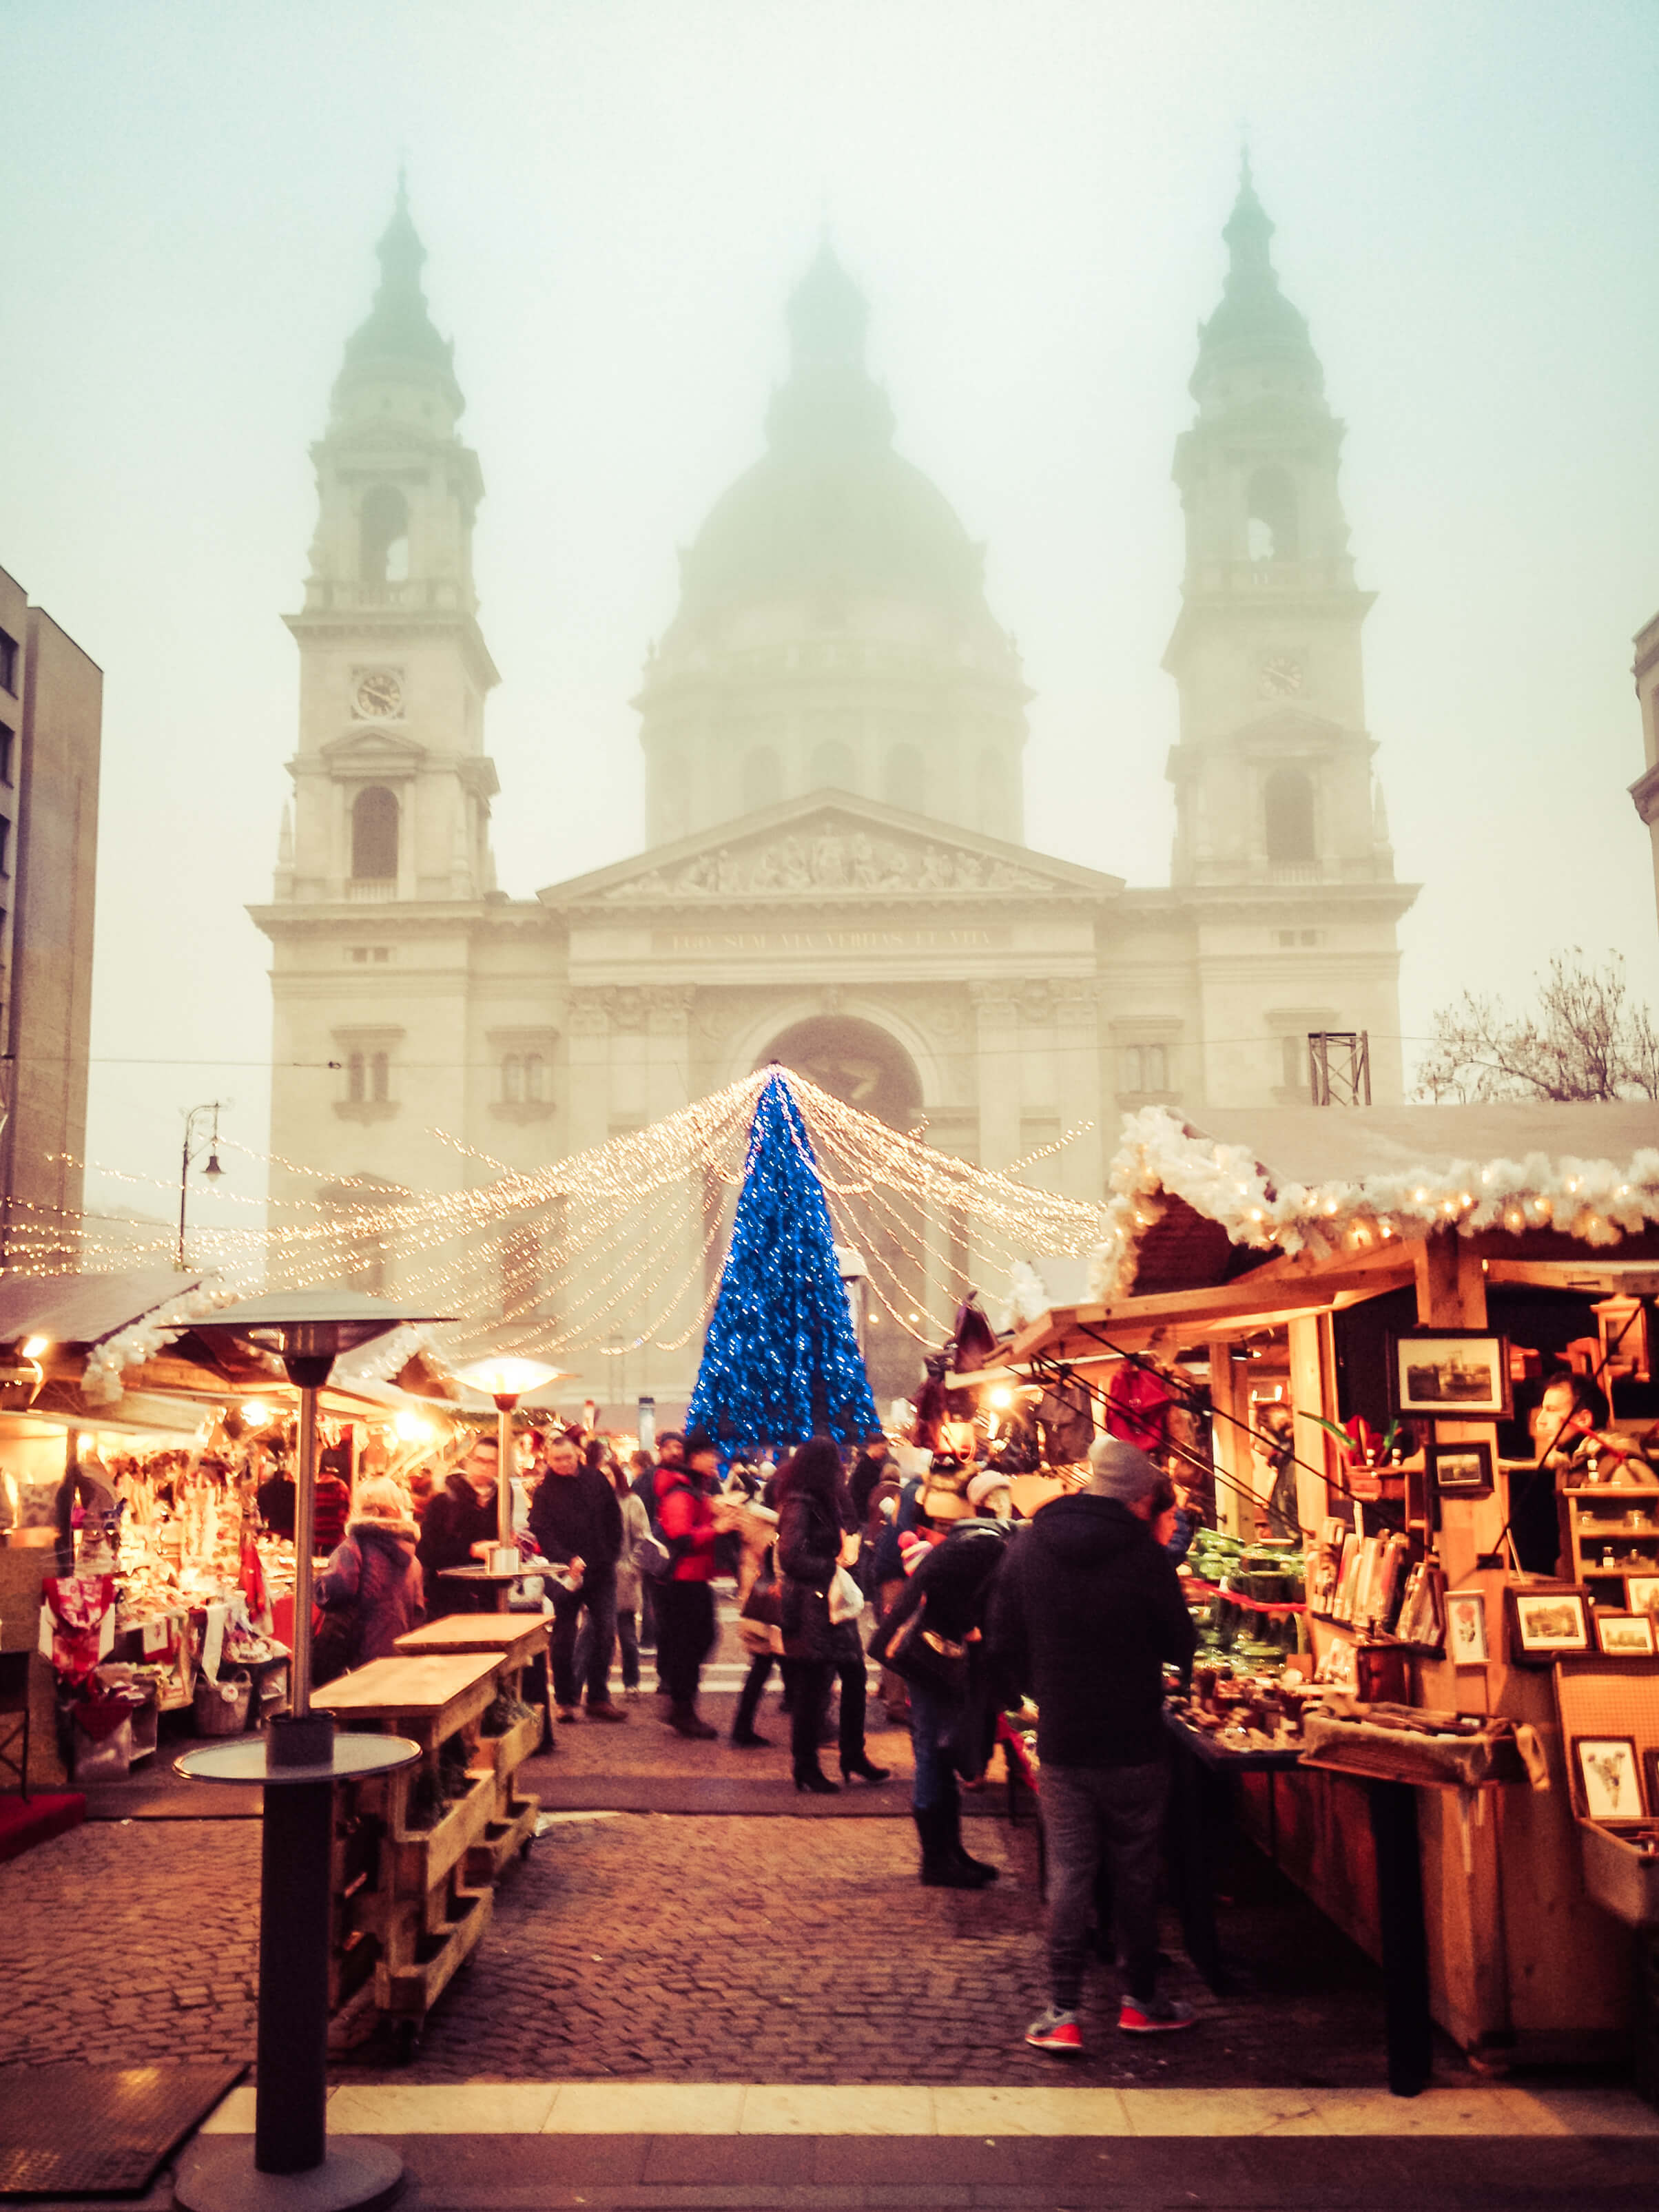 THE BEST CITY BREAKS IN DECEMBER FOR CHRISTMAS CHEER